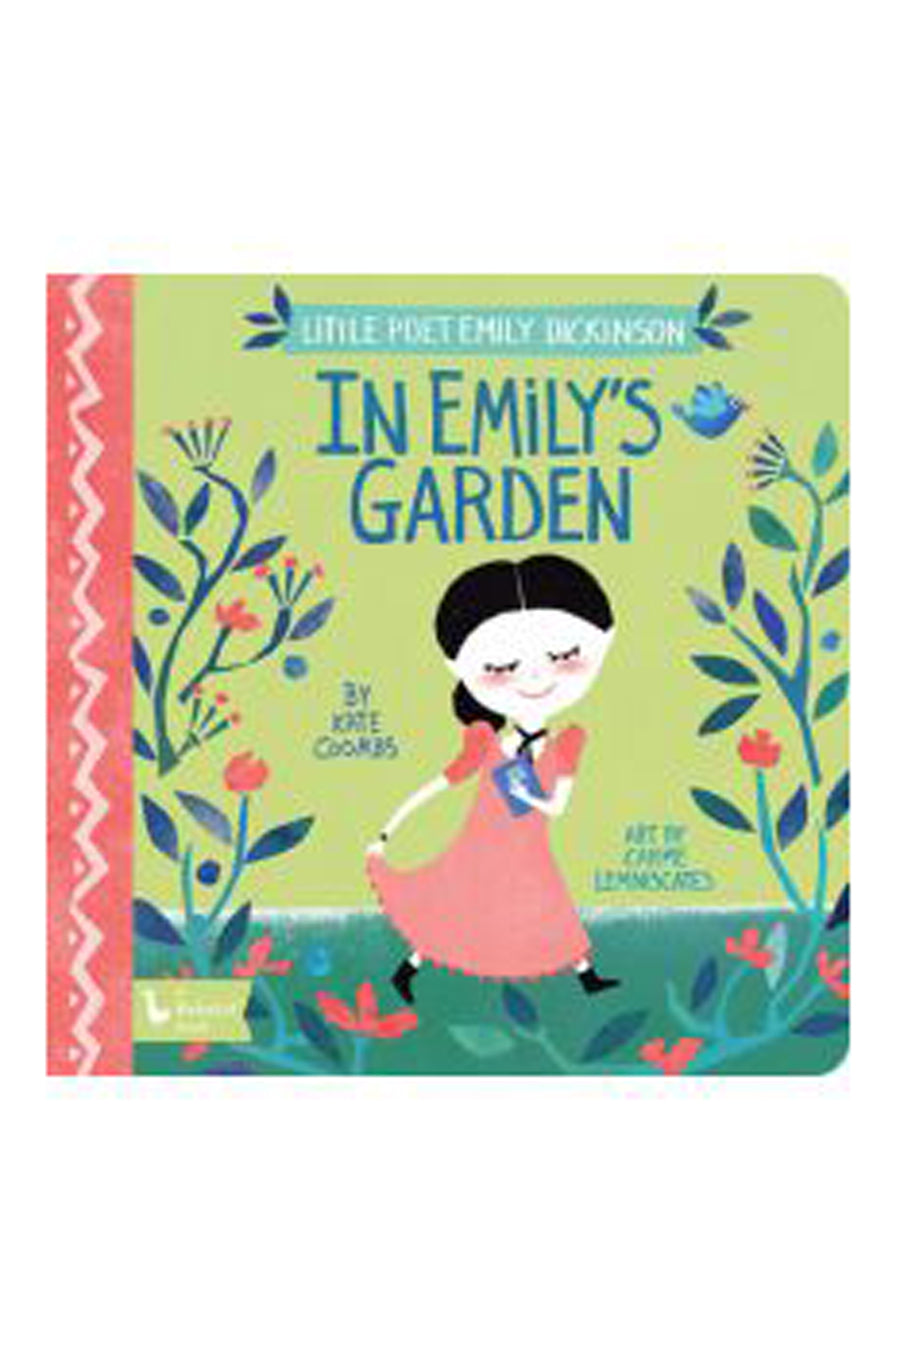 Little Poet Emily Dickinson: In Emily's Garden